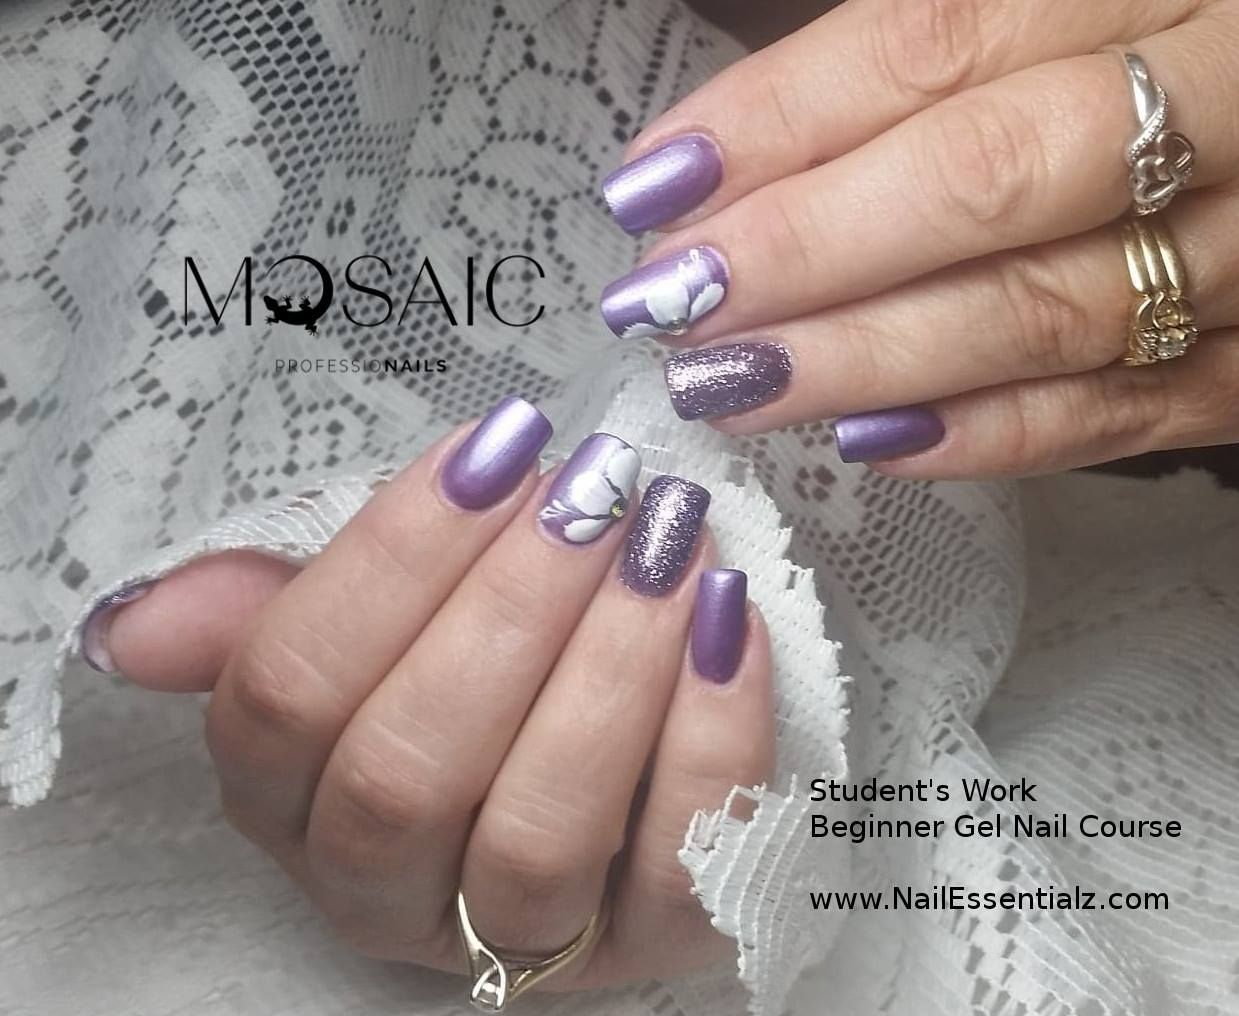 Student Work Beginner Gel Nail Course Please contact us to